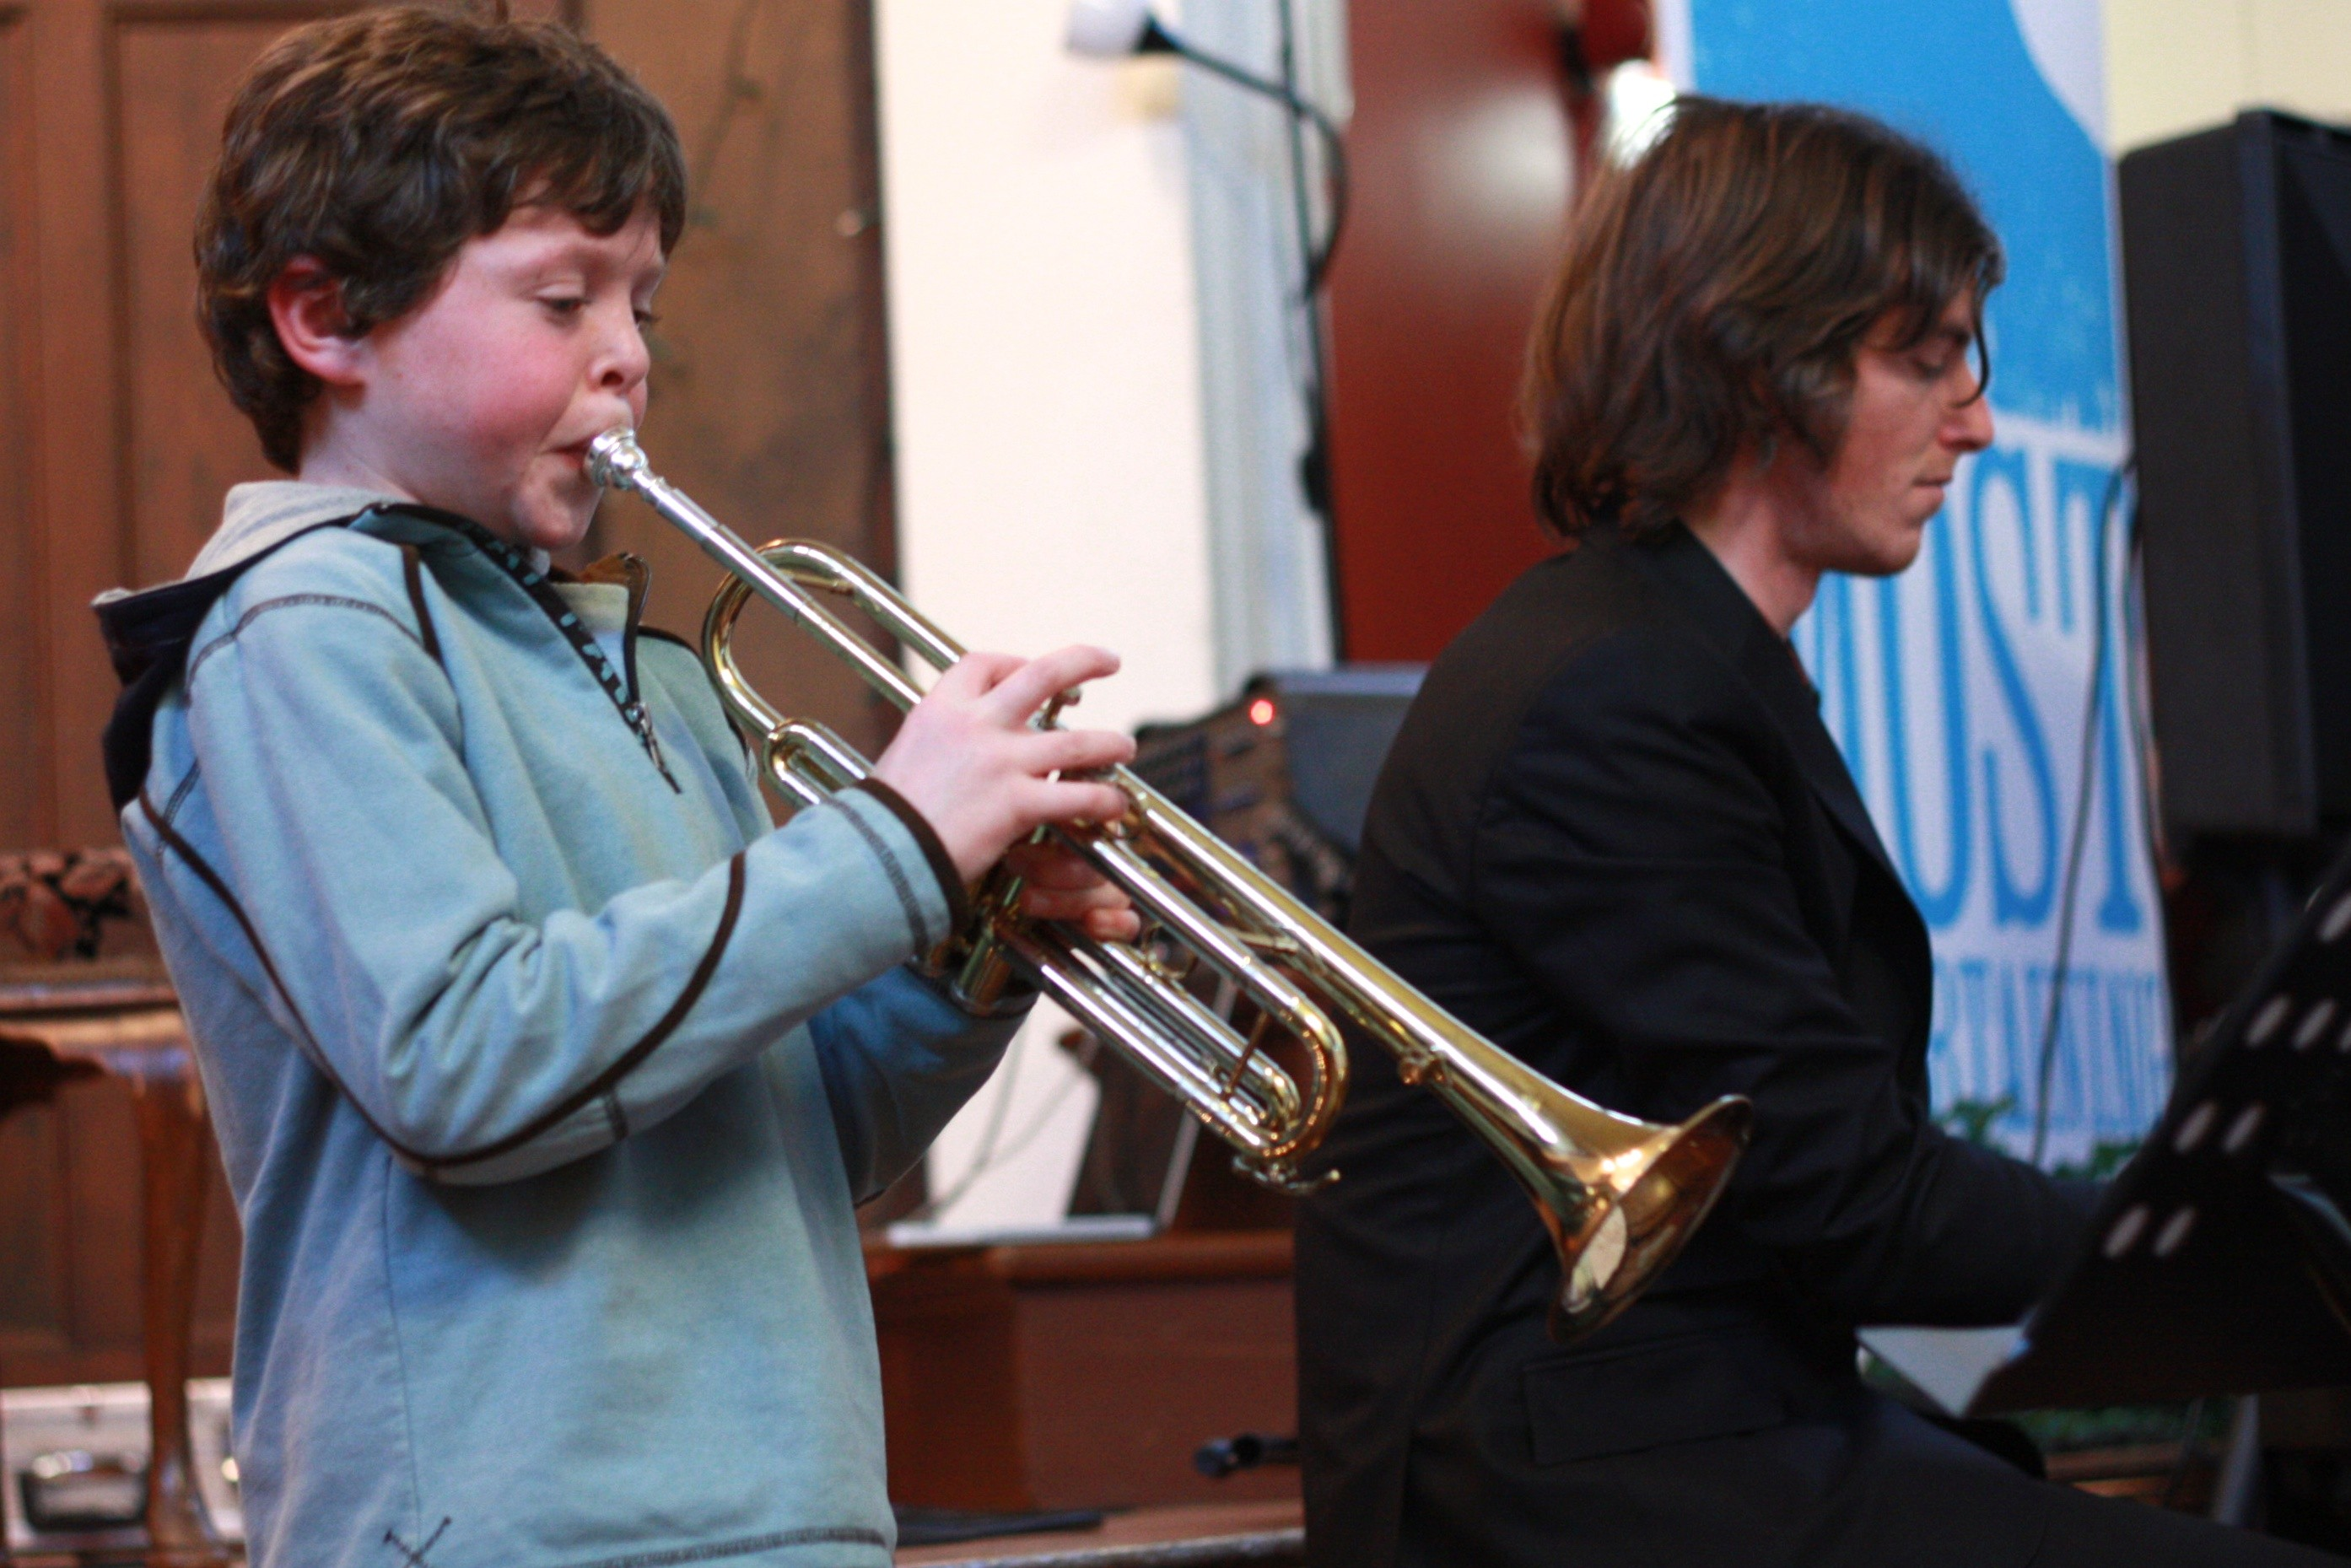 Patrick's debut on trumpet accompanied by Robert on piano; Winter 2011